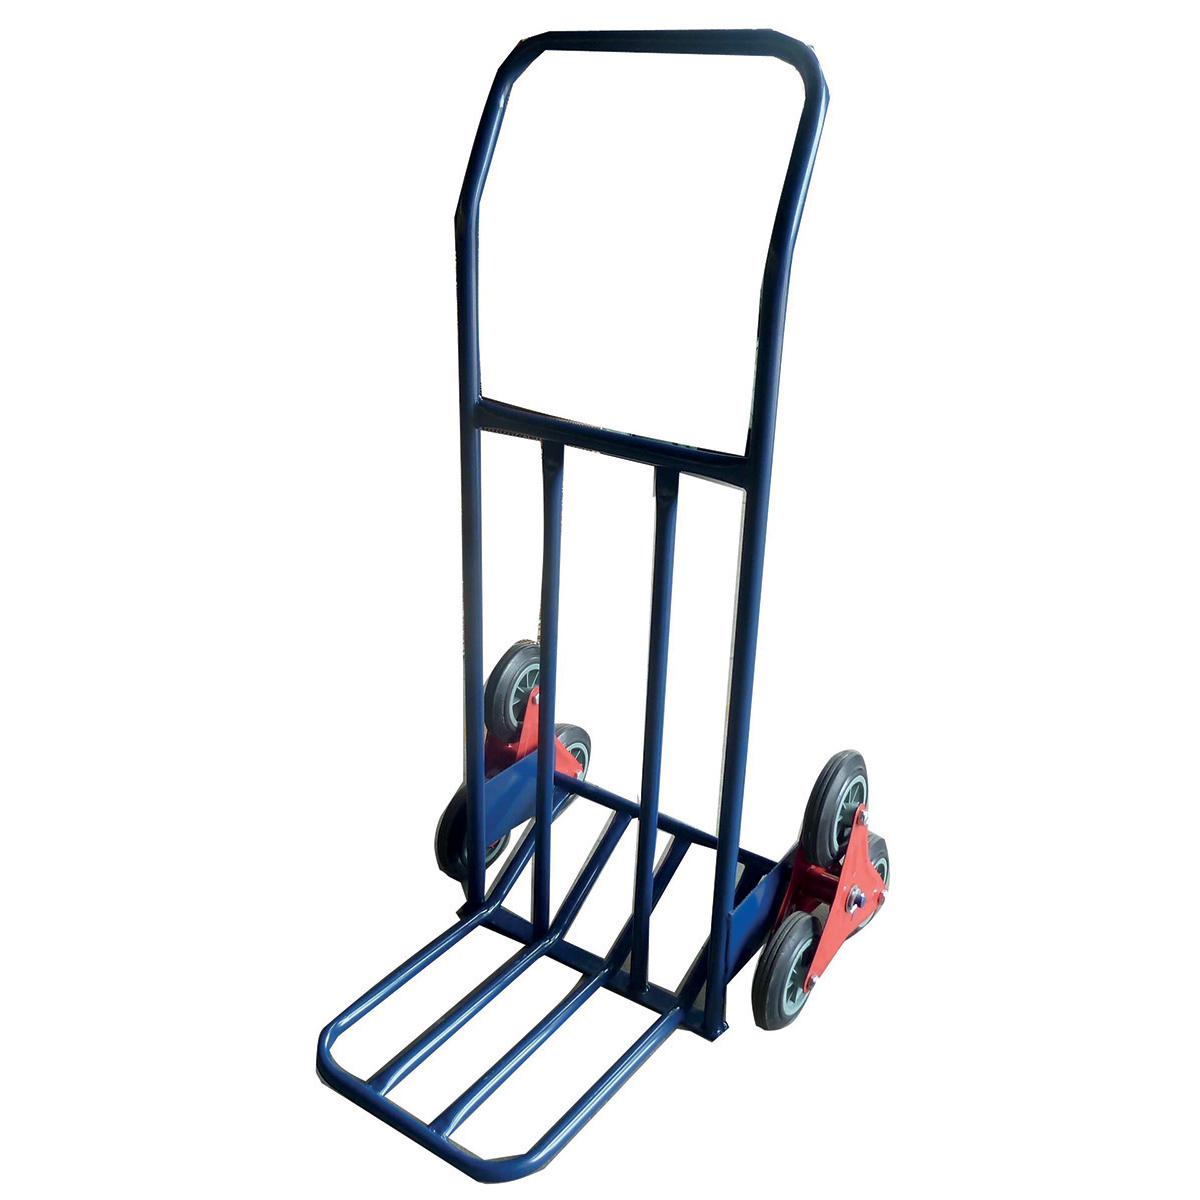 Hand trucks or accessories RelX Stair Climbing Sack Truck 6 Wheels Capacity 75kg W615xD745xH1160mm Blue Ref HT1312A